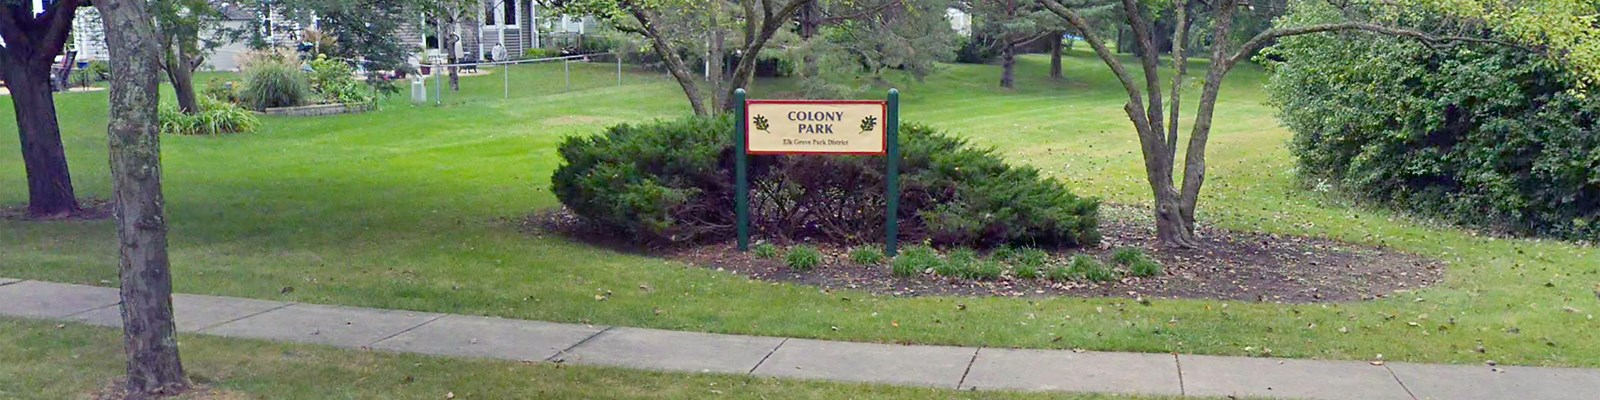 Colony Park, Walk or Ride on our Scenic Trail.